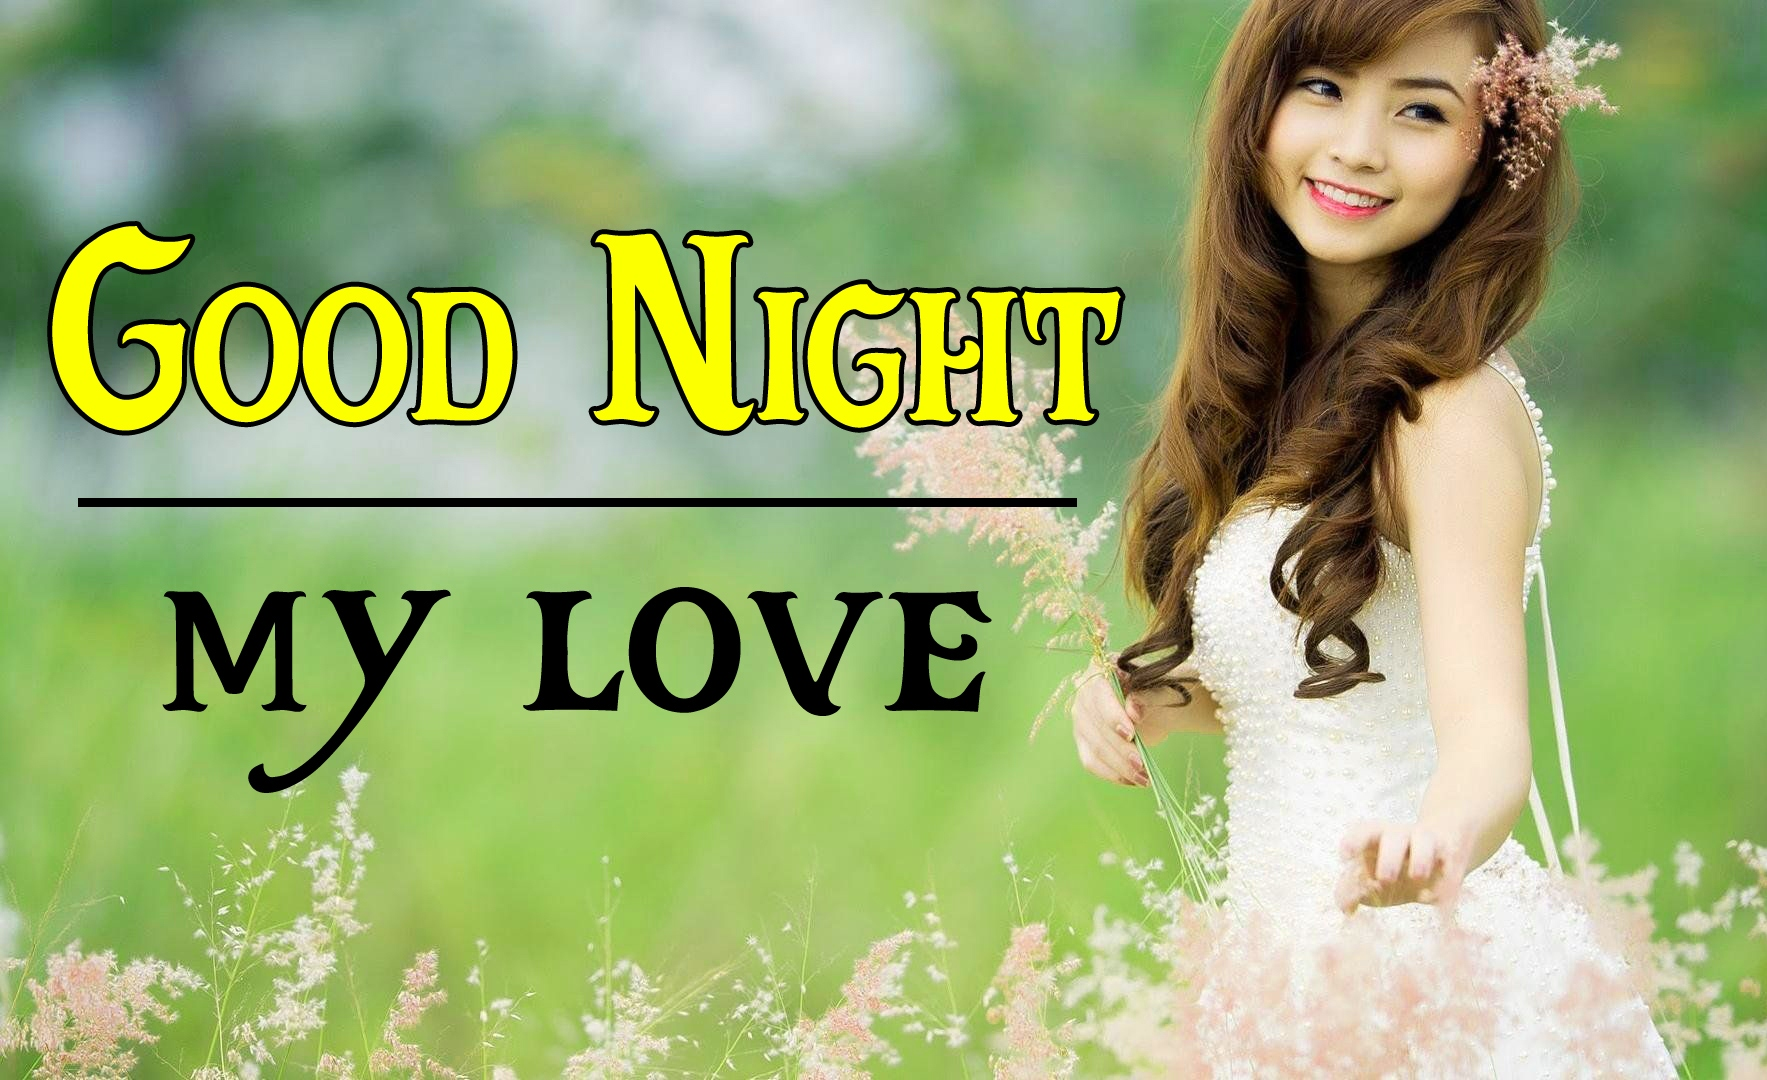 Good night wallpaper hd 51 1